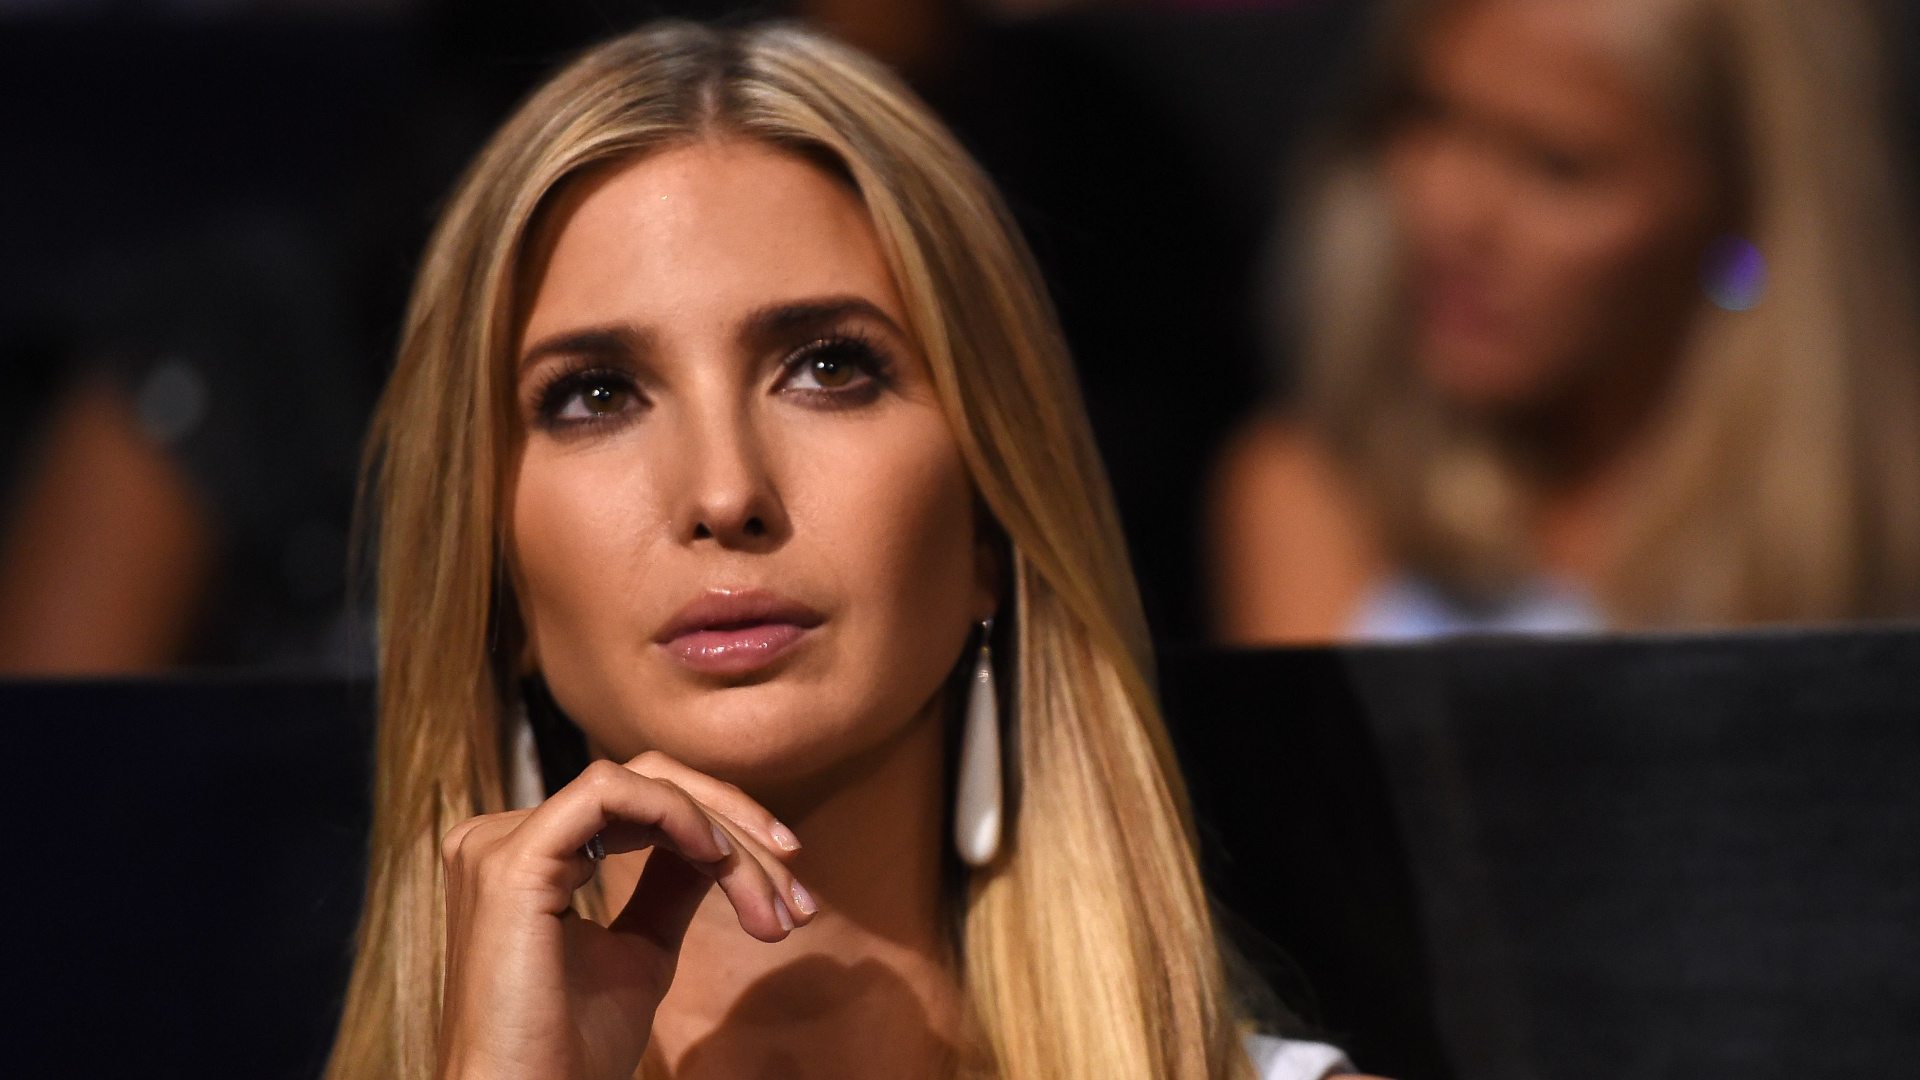 When Dad's the president — a look inside Ivanka Trump's complicated world